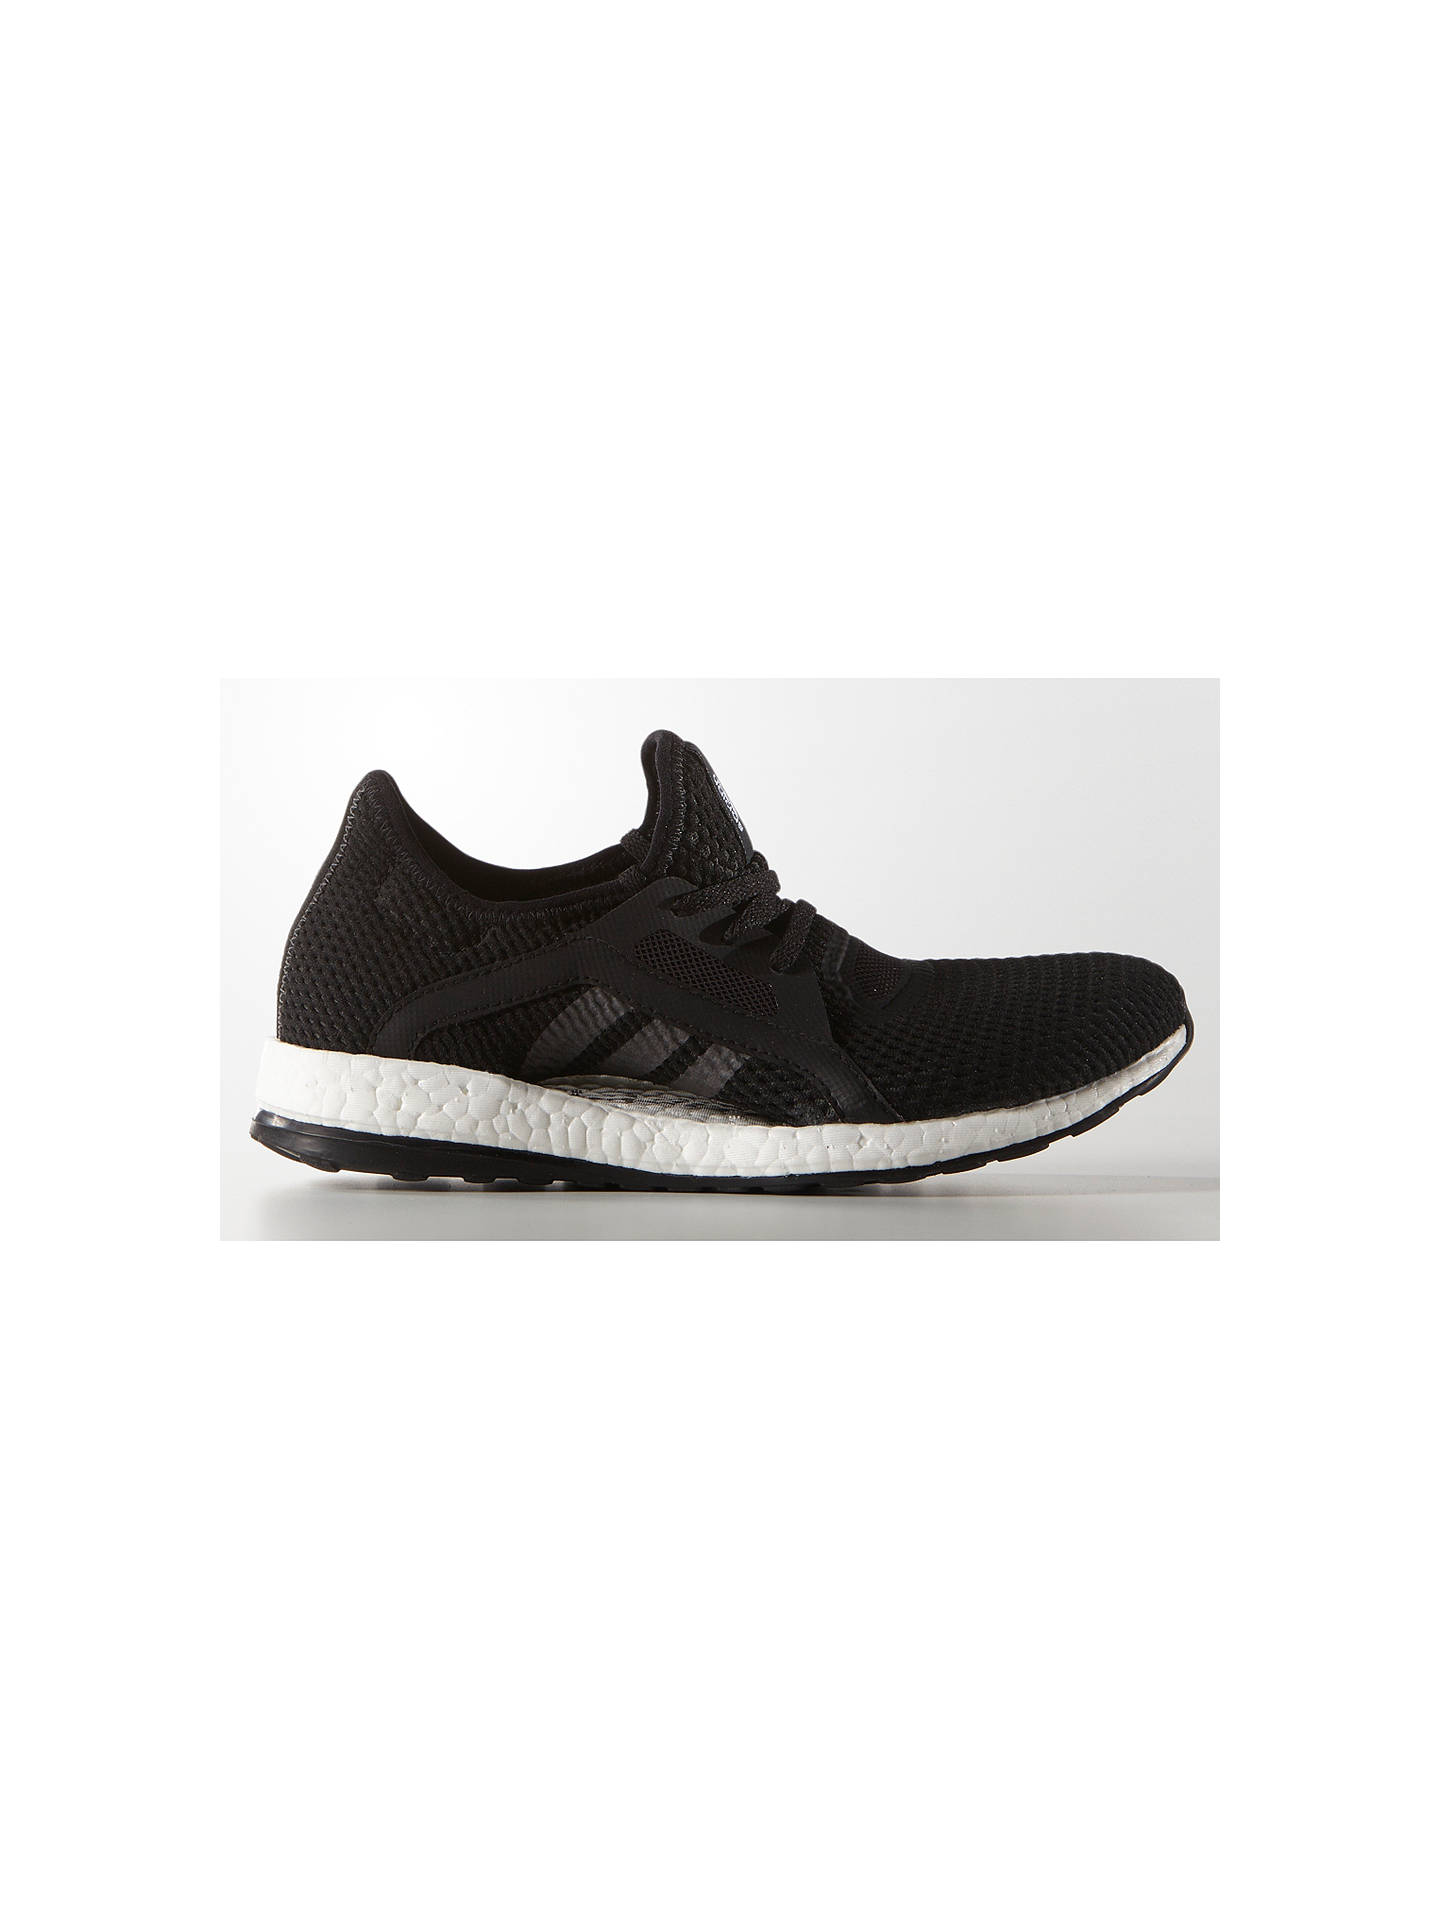 Adidas Pureboost X Women s Running Shoes at John Lewis   Partners 217b4ac7ba